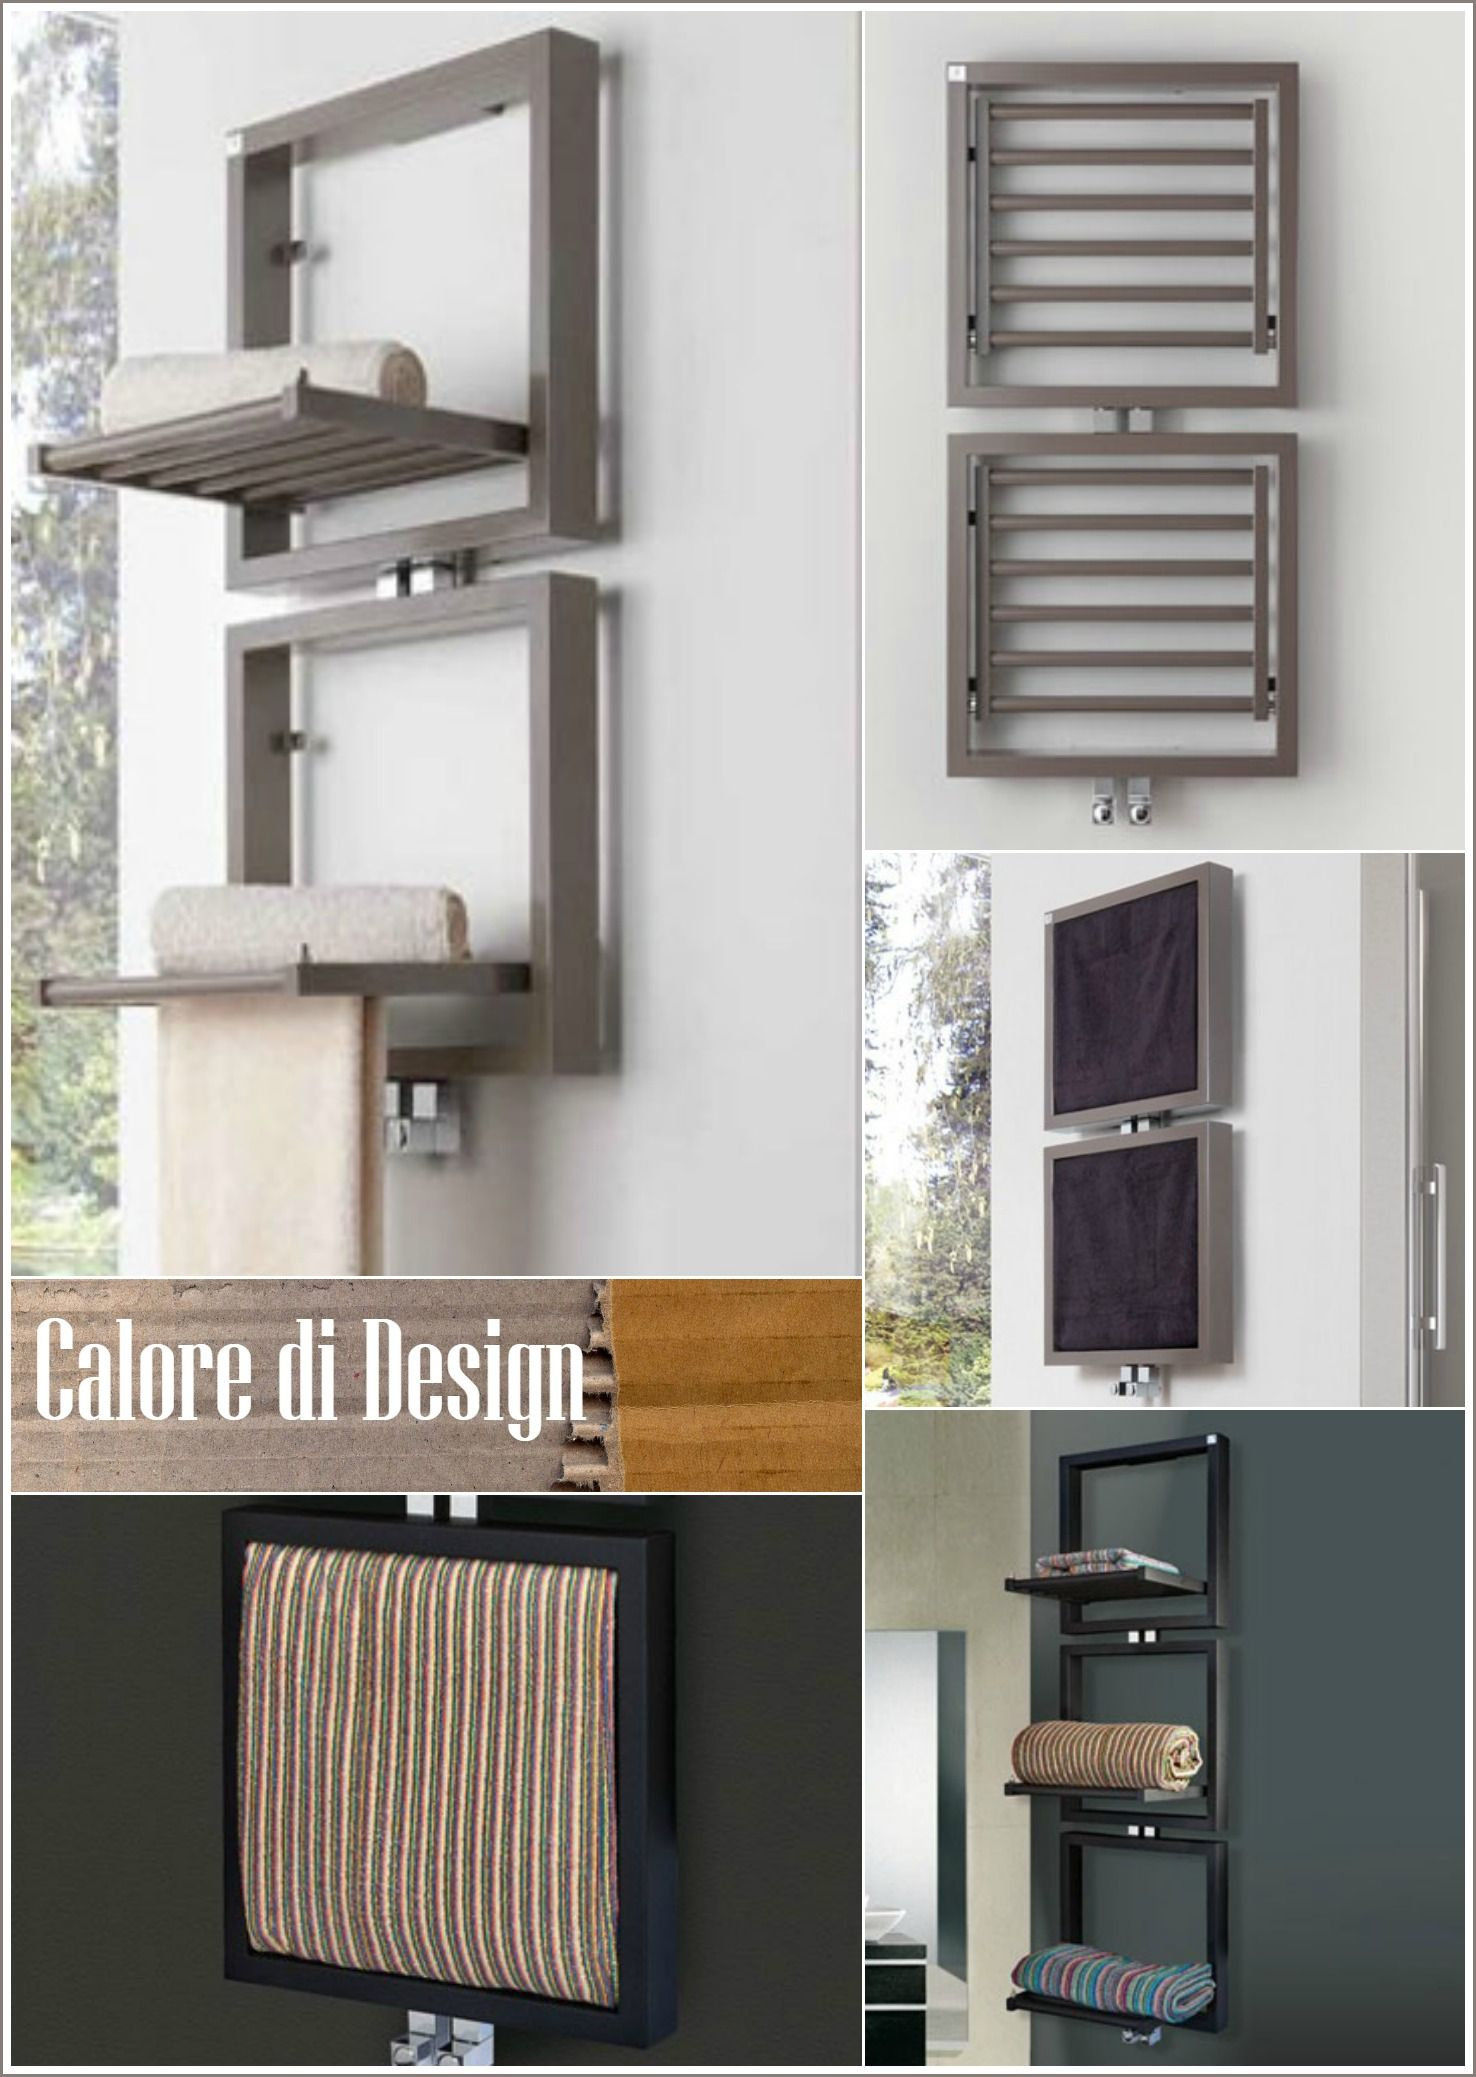 THERAPY4HOME : UN BAGNO DI ALTO DESIGN | Pinterest